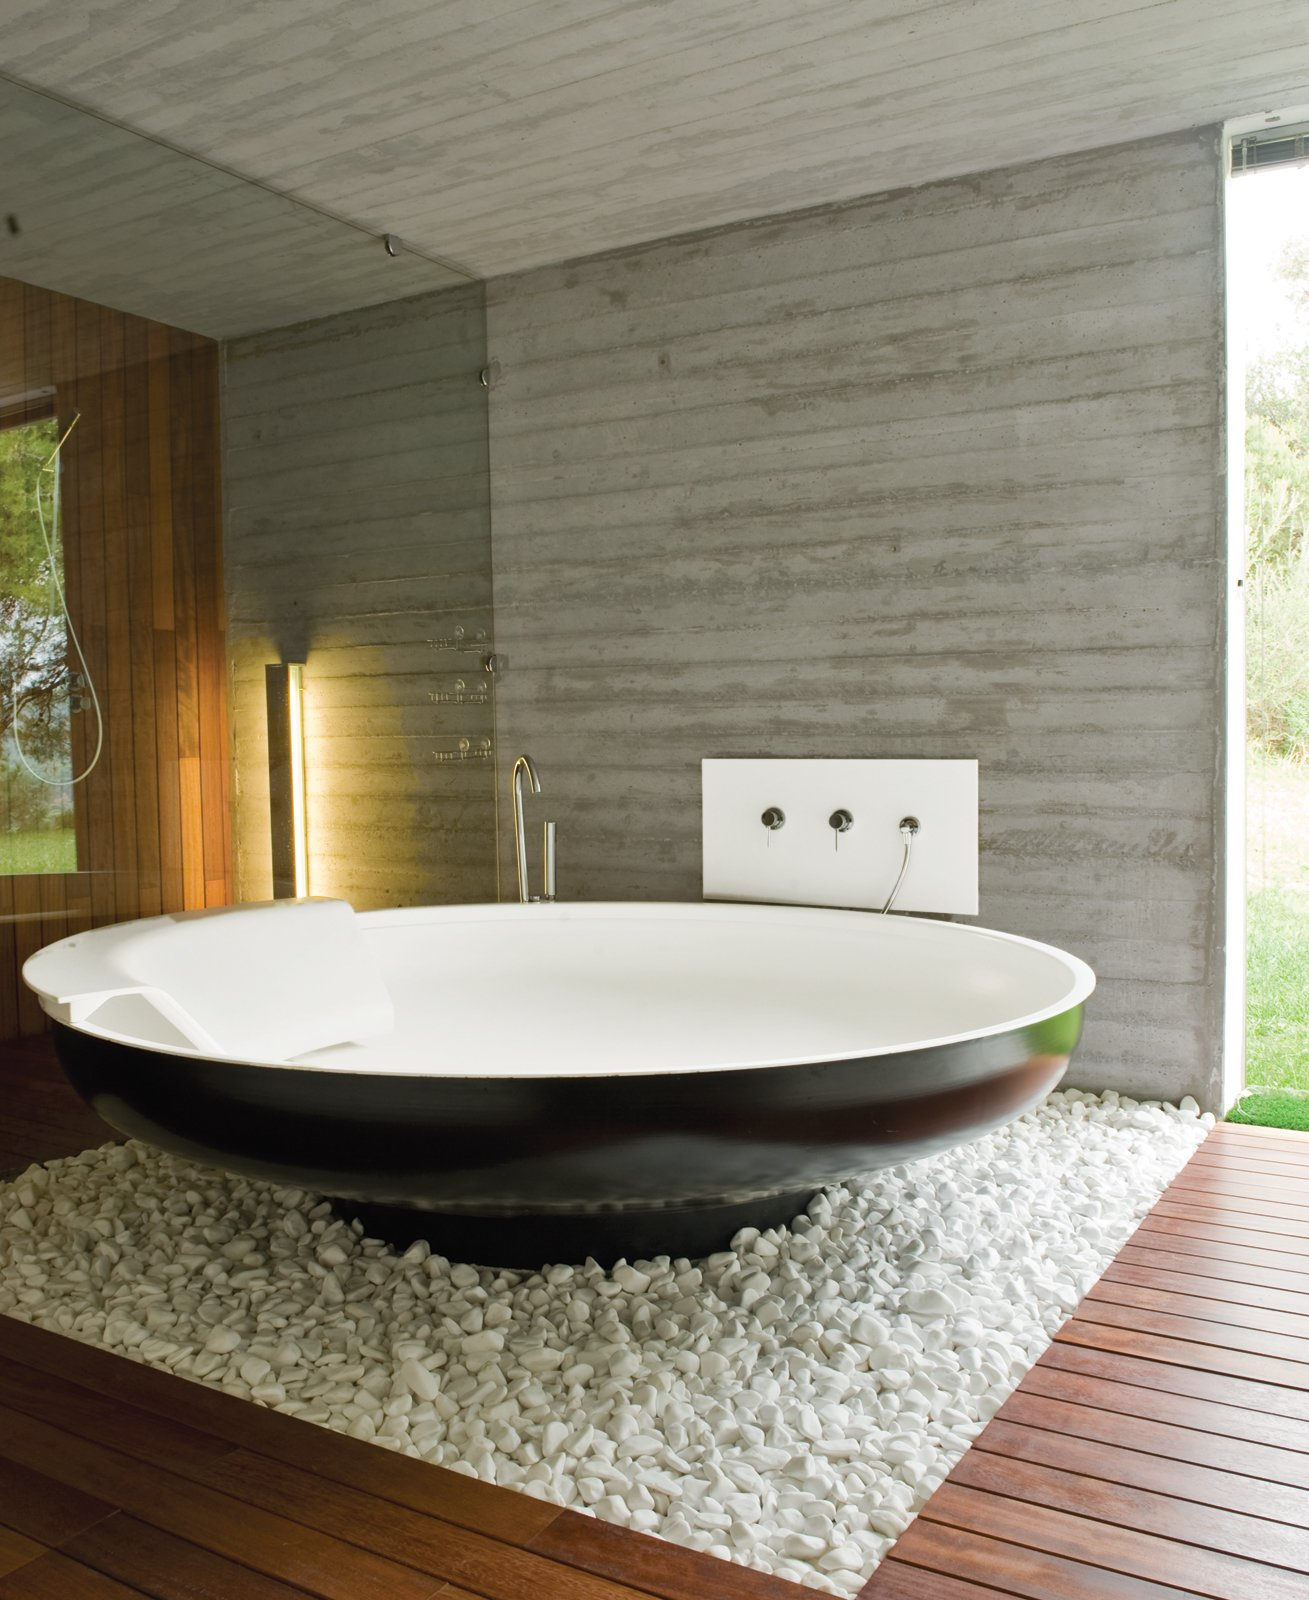 Bath Room, Concrete Wall, and Freestanding Tub A UFO bathtub by Benedini Associati for Agape lends an alien touch to one of the master bathrooms.  Photo 5 of 11 in 10 Ideas For Designing With a Modern Bathtub from An Idyllic Vacation Home in Greece